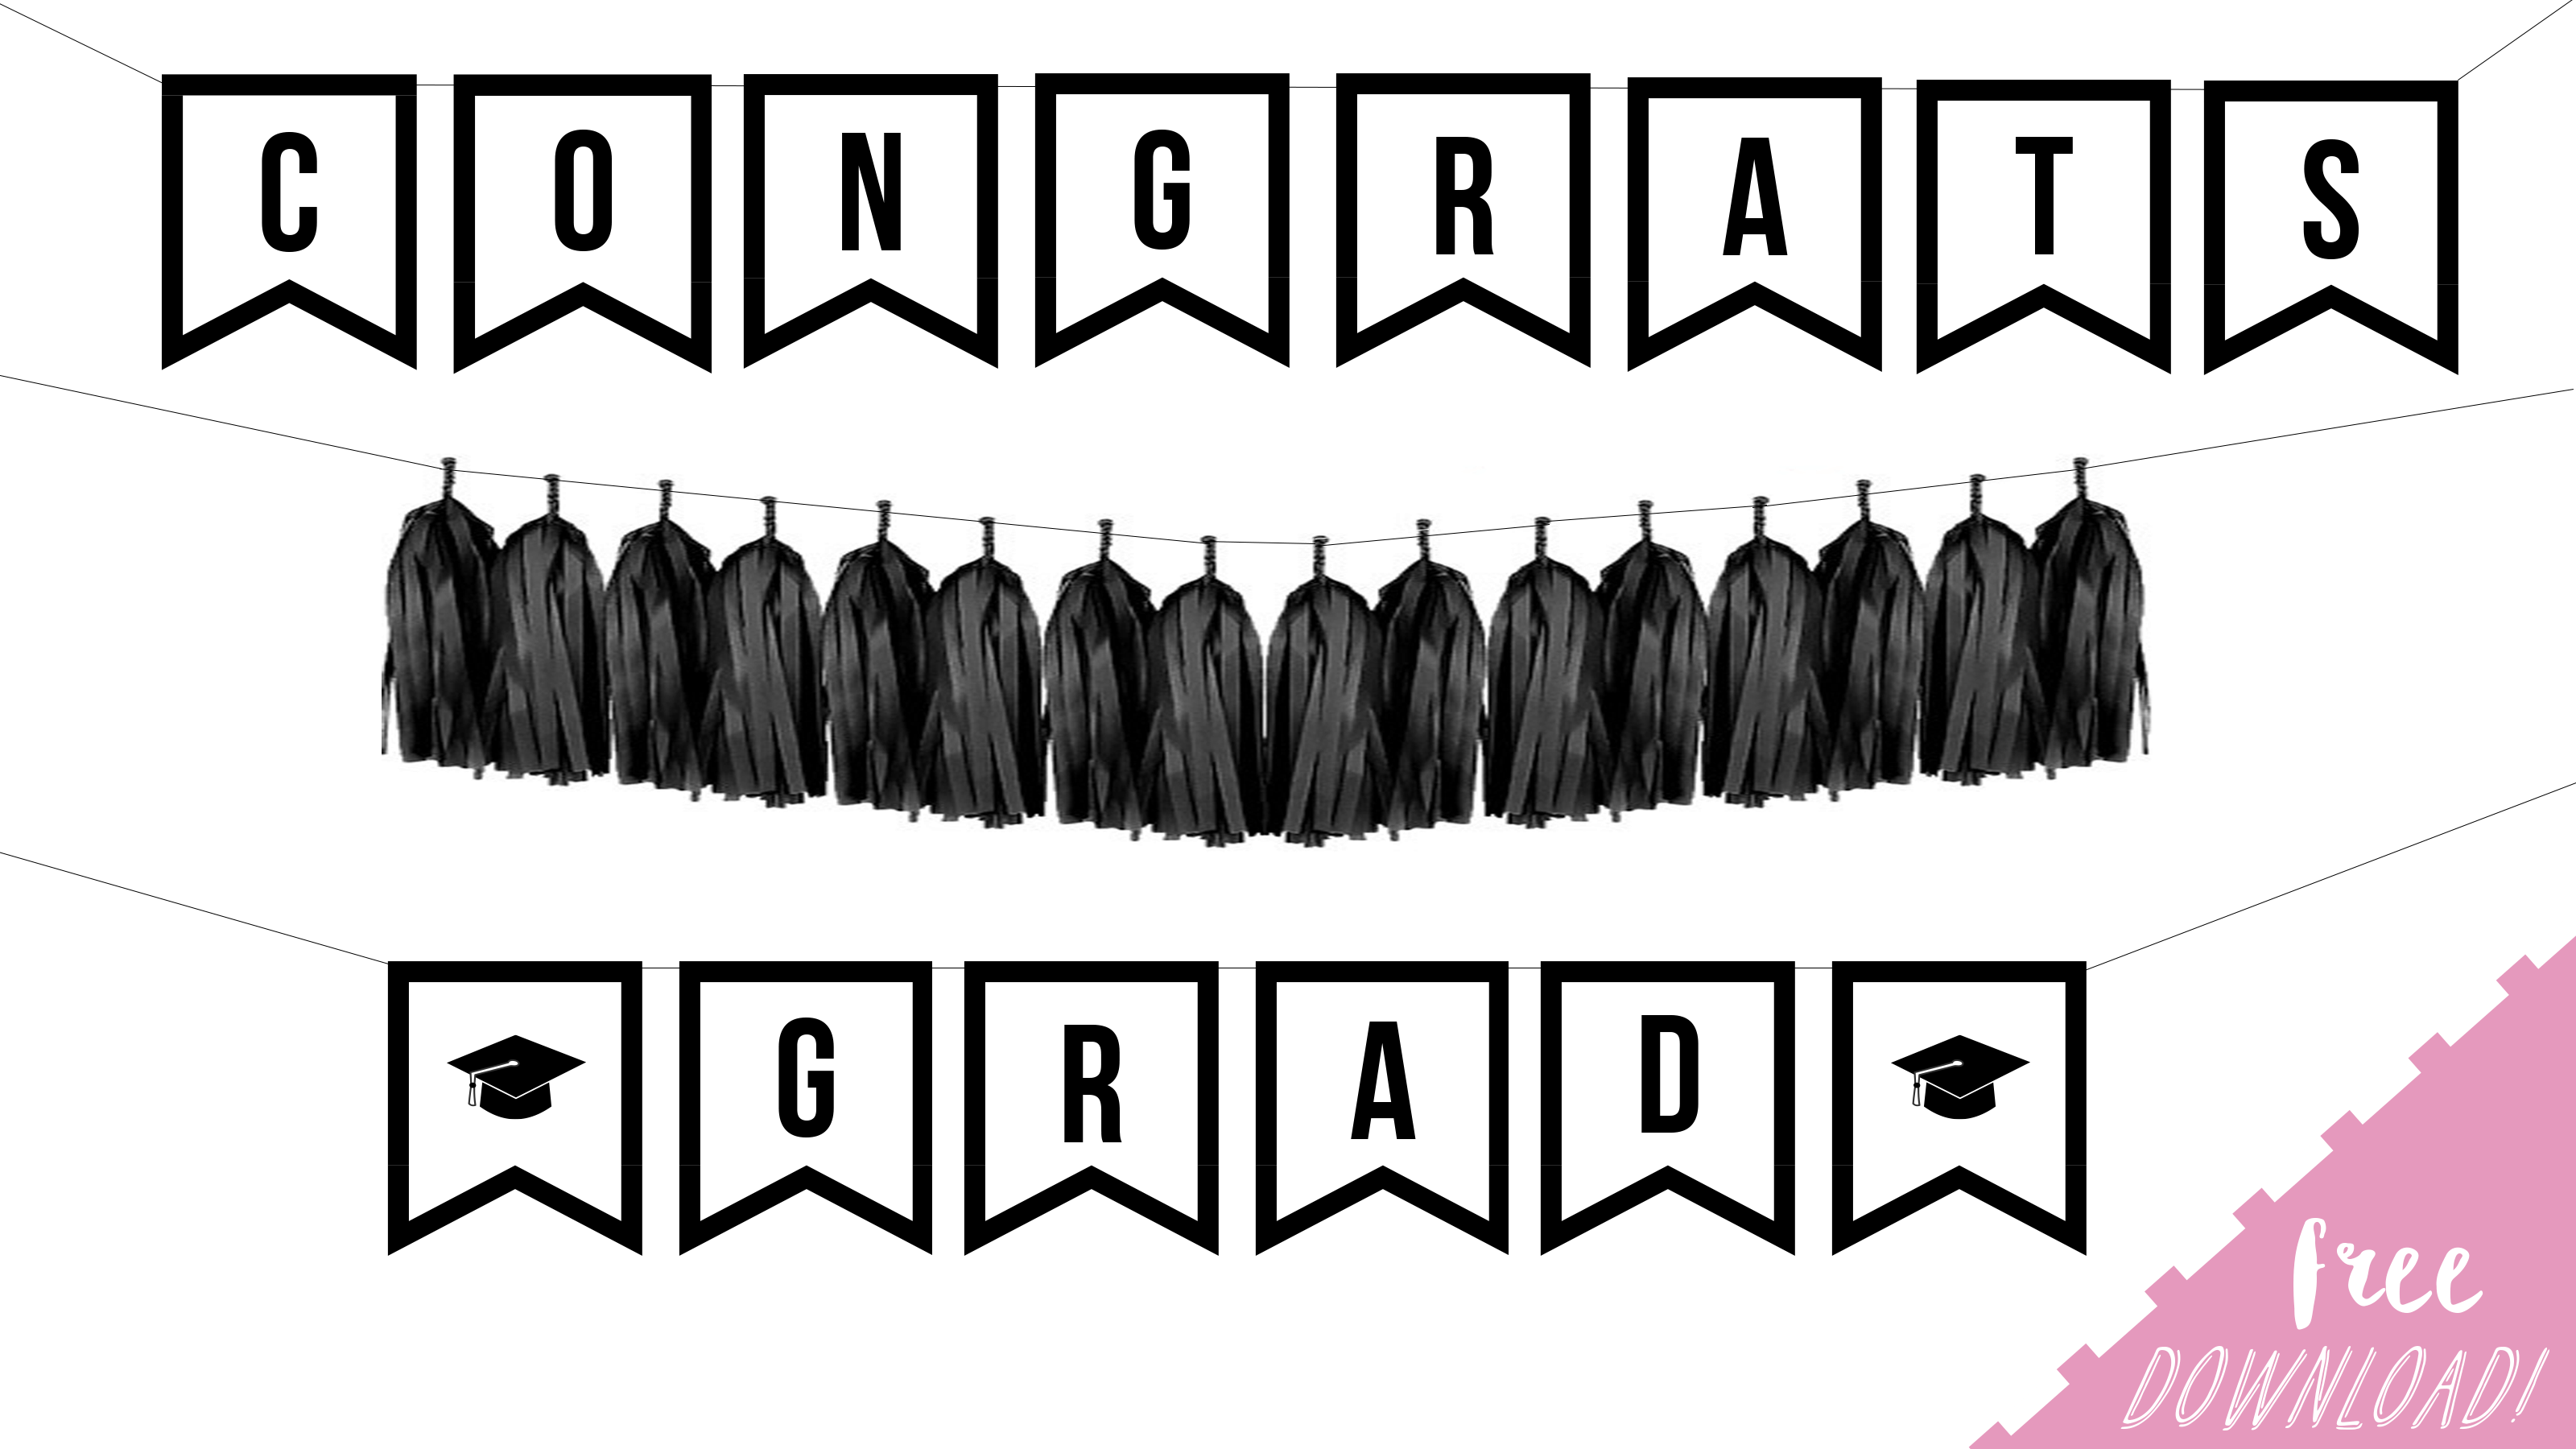 photo about Congratulations Banner Free Printable identified as Absolutely free Printable Commencement Banner - By way of Sophia Lee